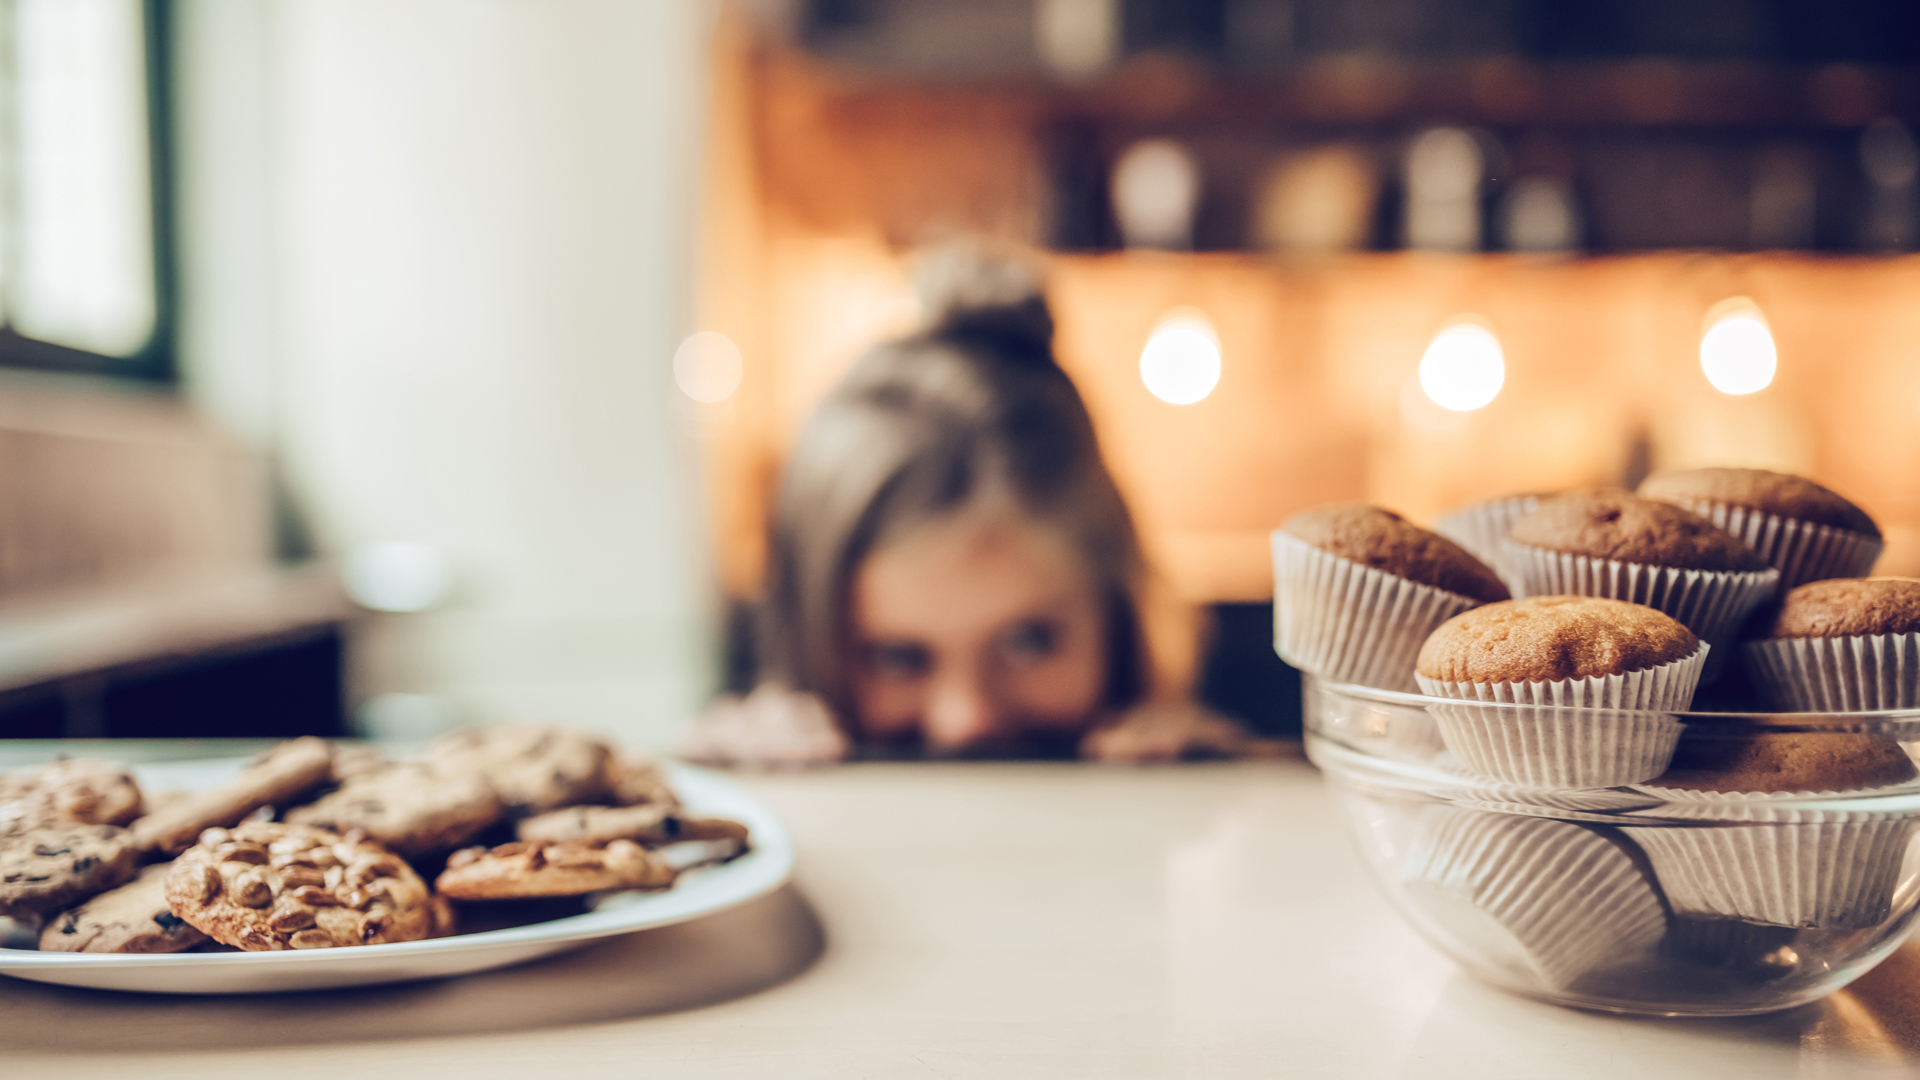 Little girl on the edge of the counter eyeing plates of cookies and muffins